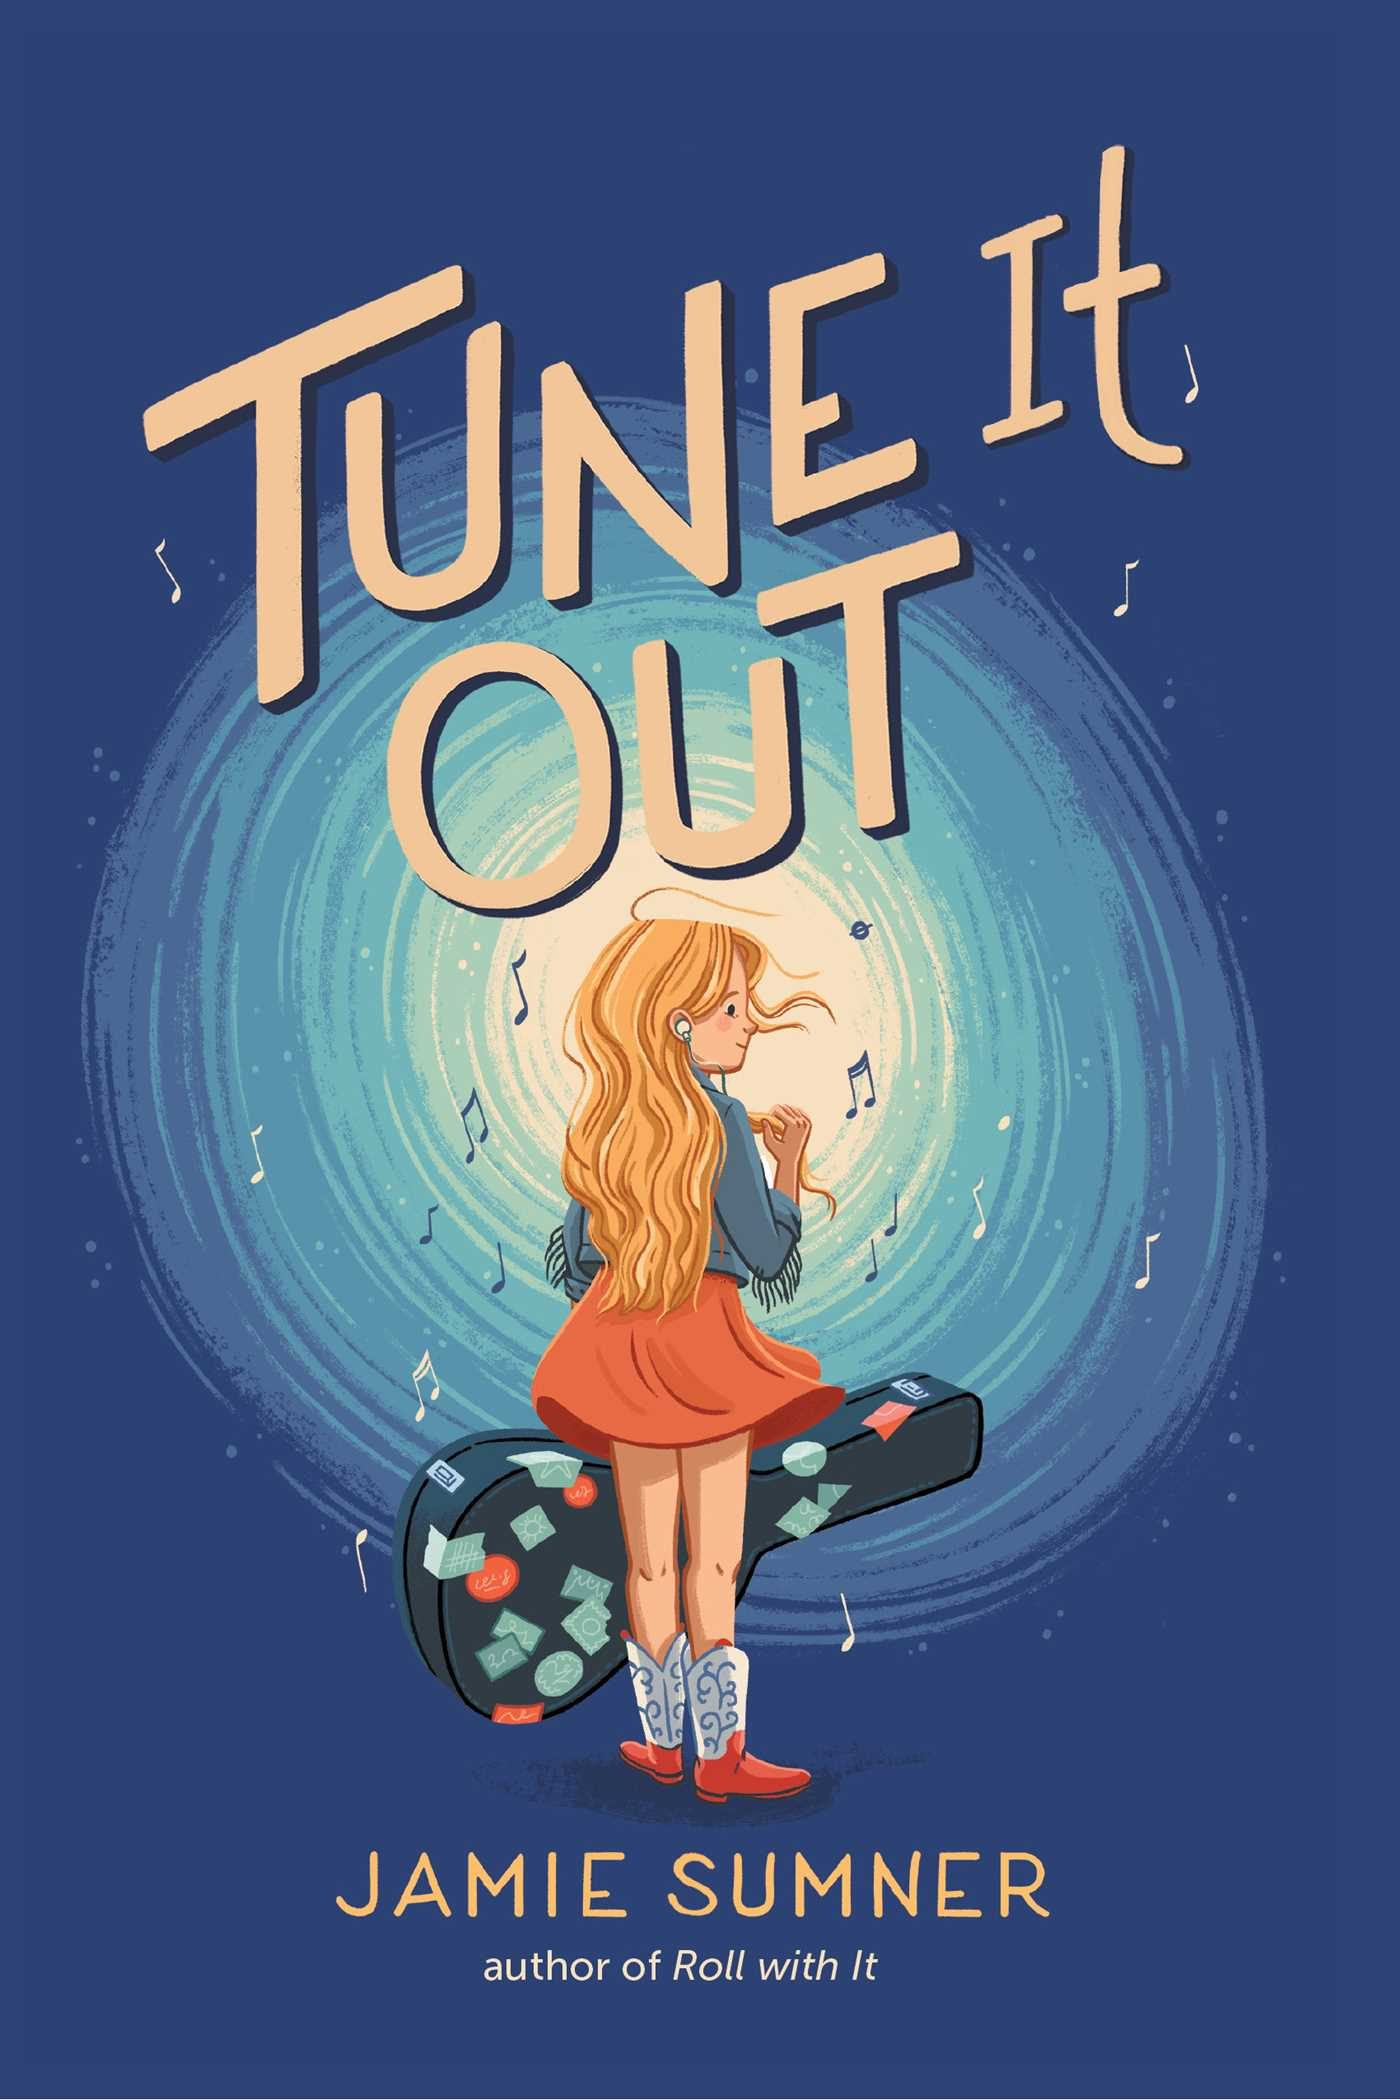 When Will Tune It Out By Jamie Sumner Release? 2020 Children's Realistic Fiction Releases